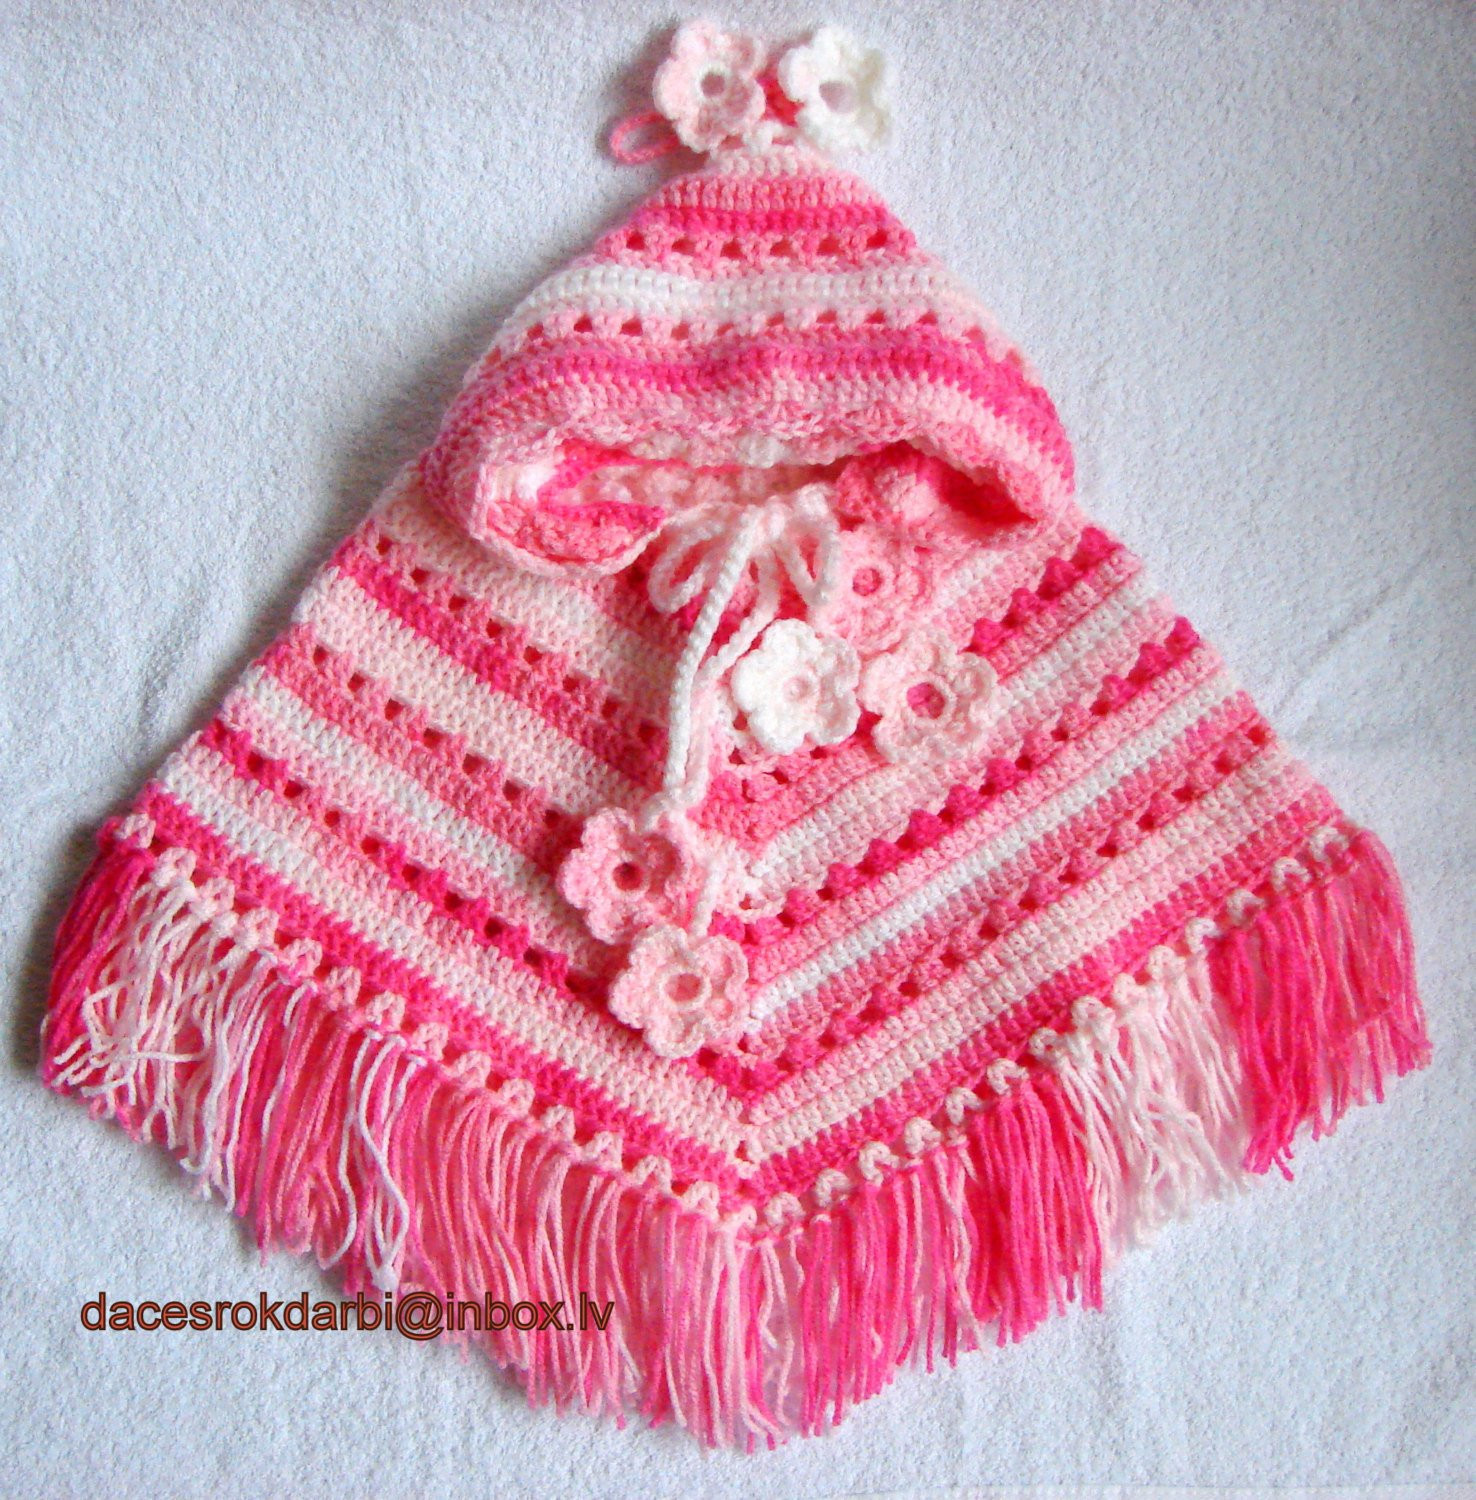 Baby Girl Crochet Patterns Unique Baby Girl Crocheted Hooded Poncho by Dachuks On Etsy Of Perfect 45 Models Baby Girl Crochet Patterns